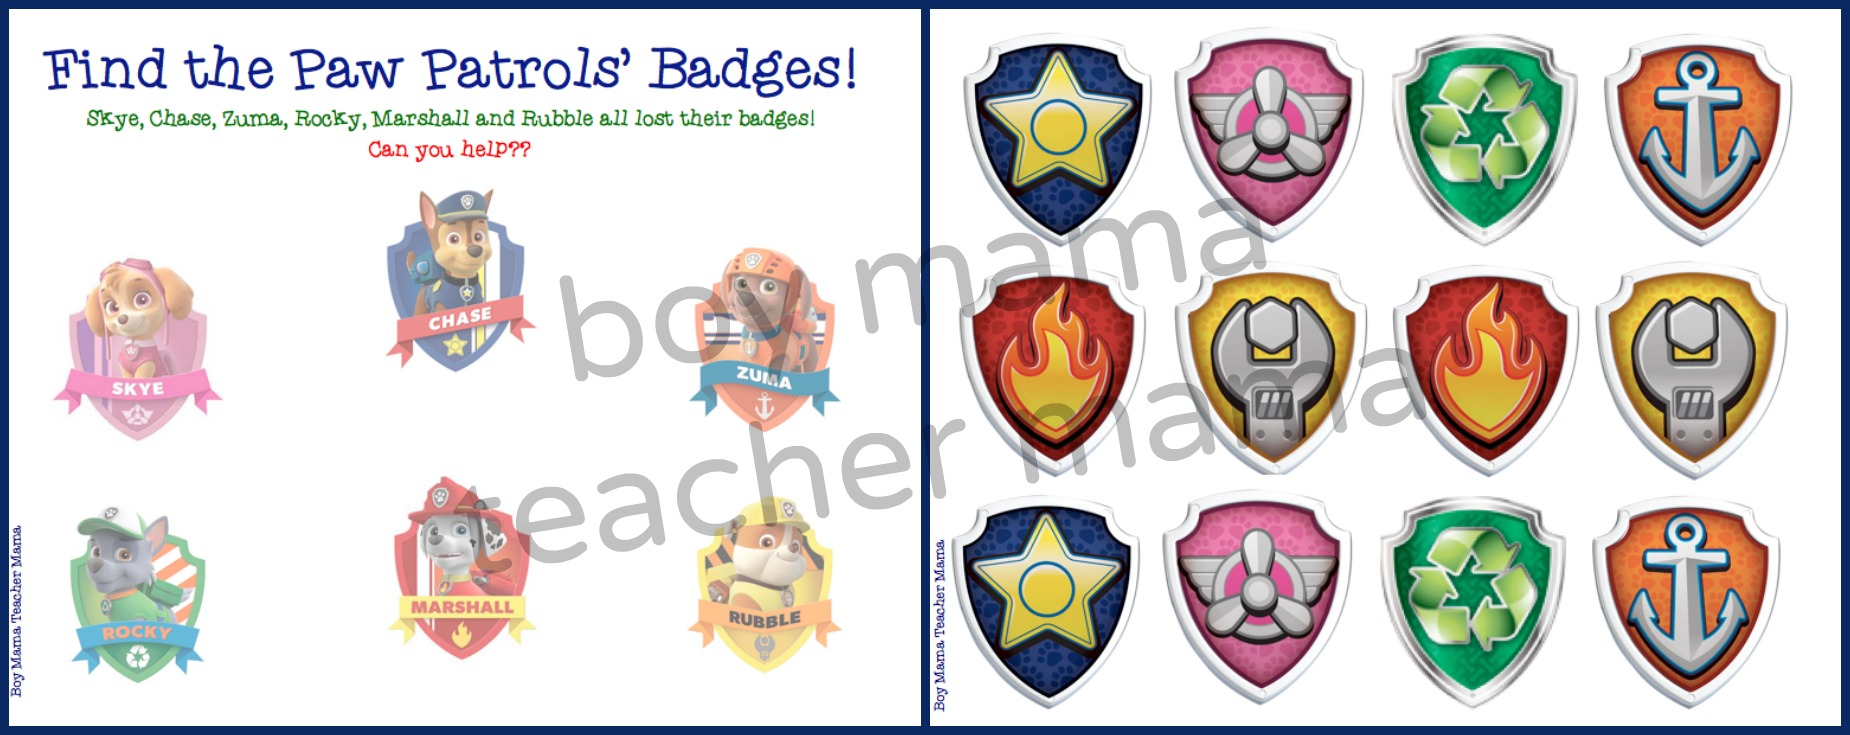 photograph about Paw Patrol Printable identify Boy Mama: Cost-free Paw Patrol Obtain the Badge Printable Recreation